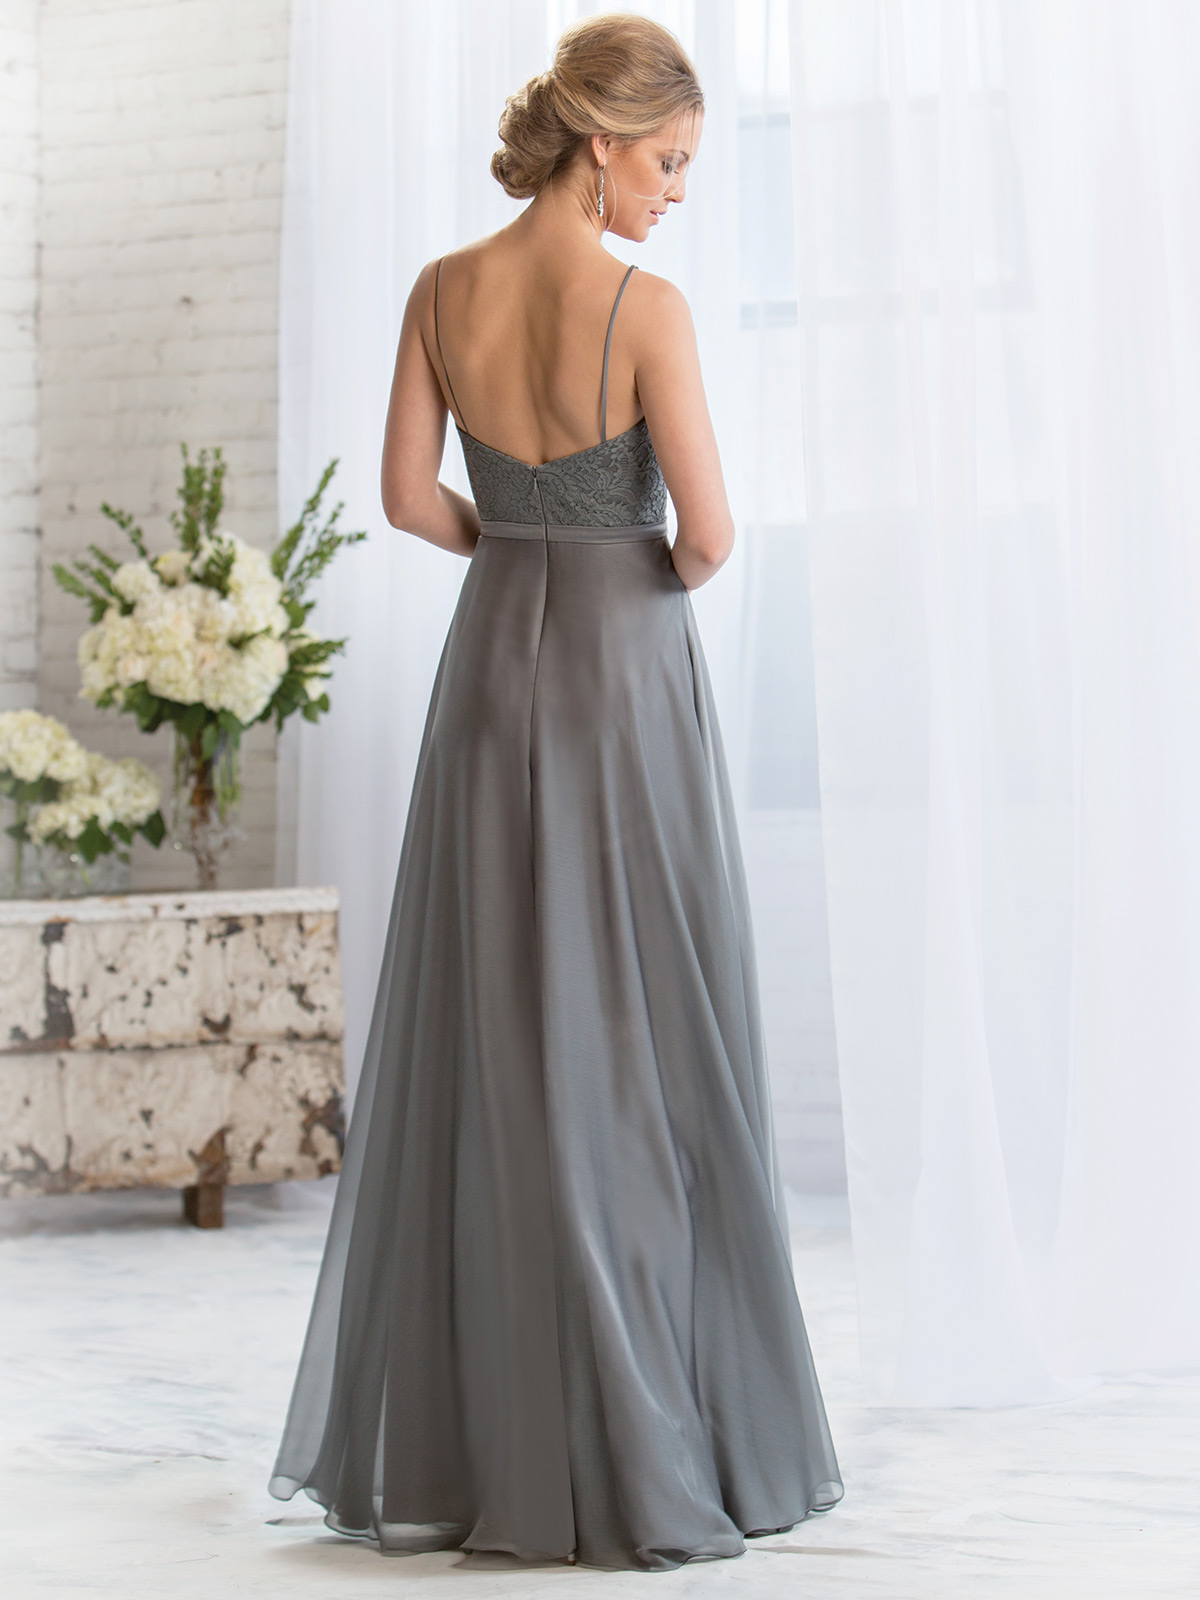 Belsoie Bridesmaid Dress L164070: DimitraDesigns.com